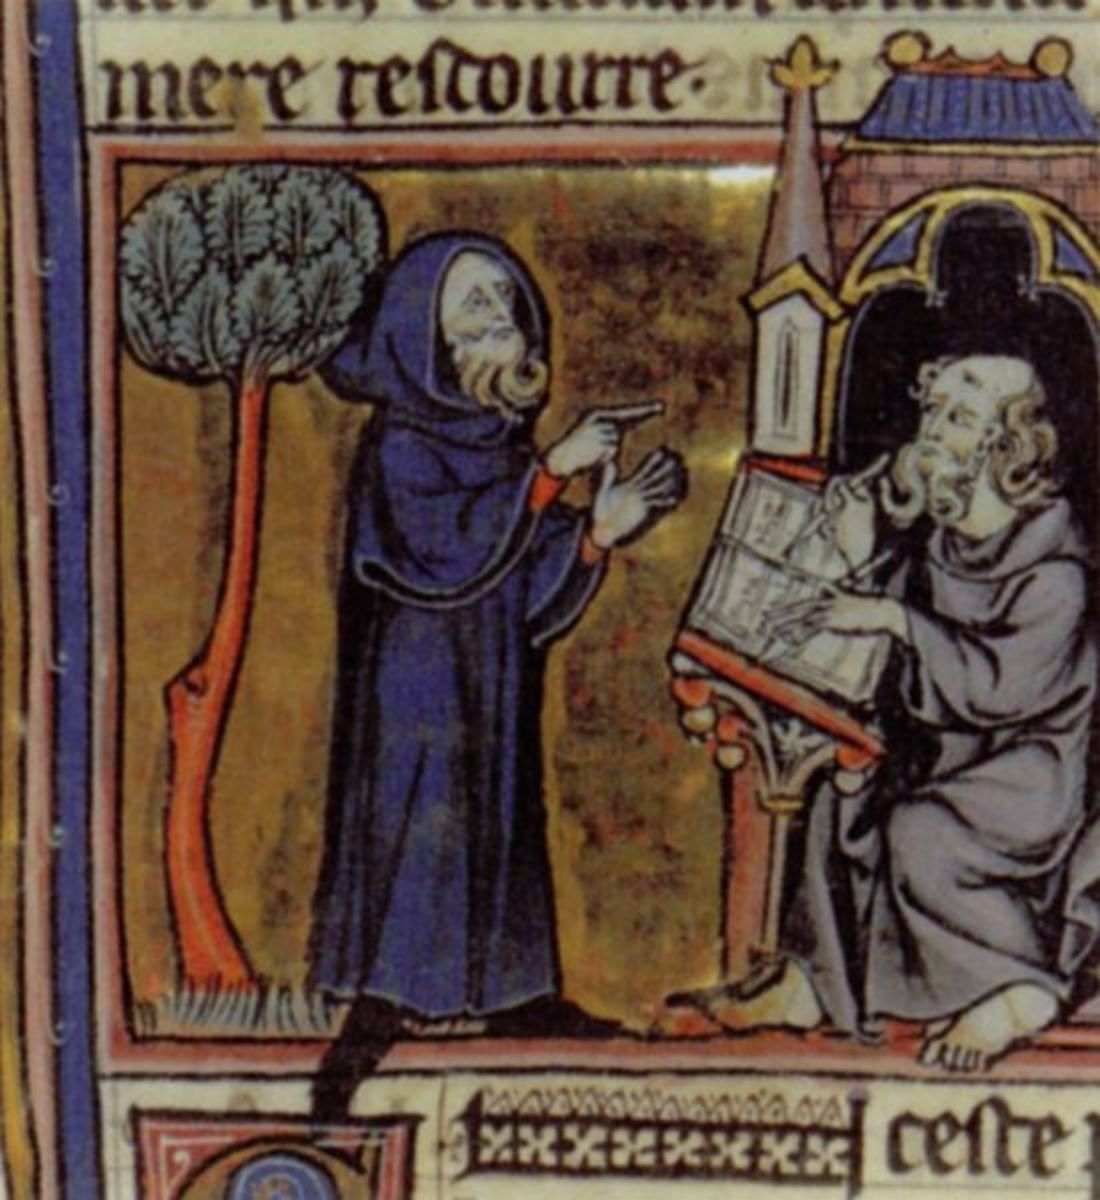 Merlin and Blaise; French 13th century miniature from Robert de Boron's Merlin en prose  (written ca 1200)